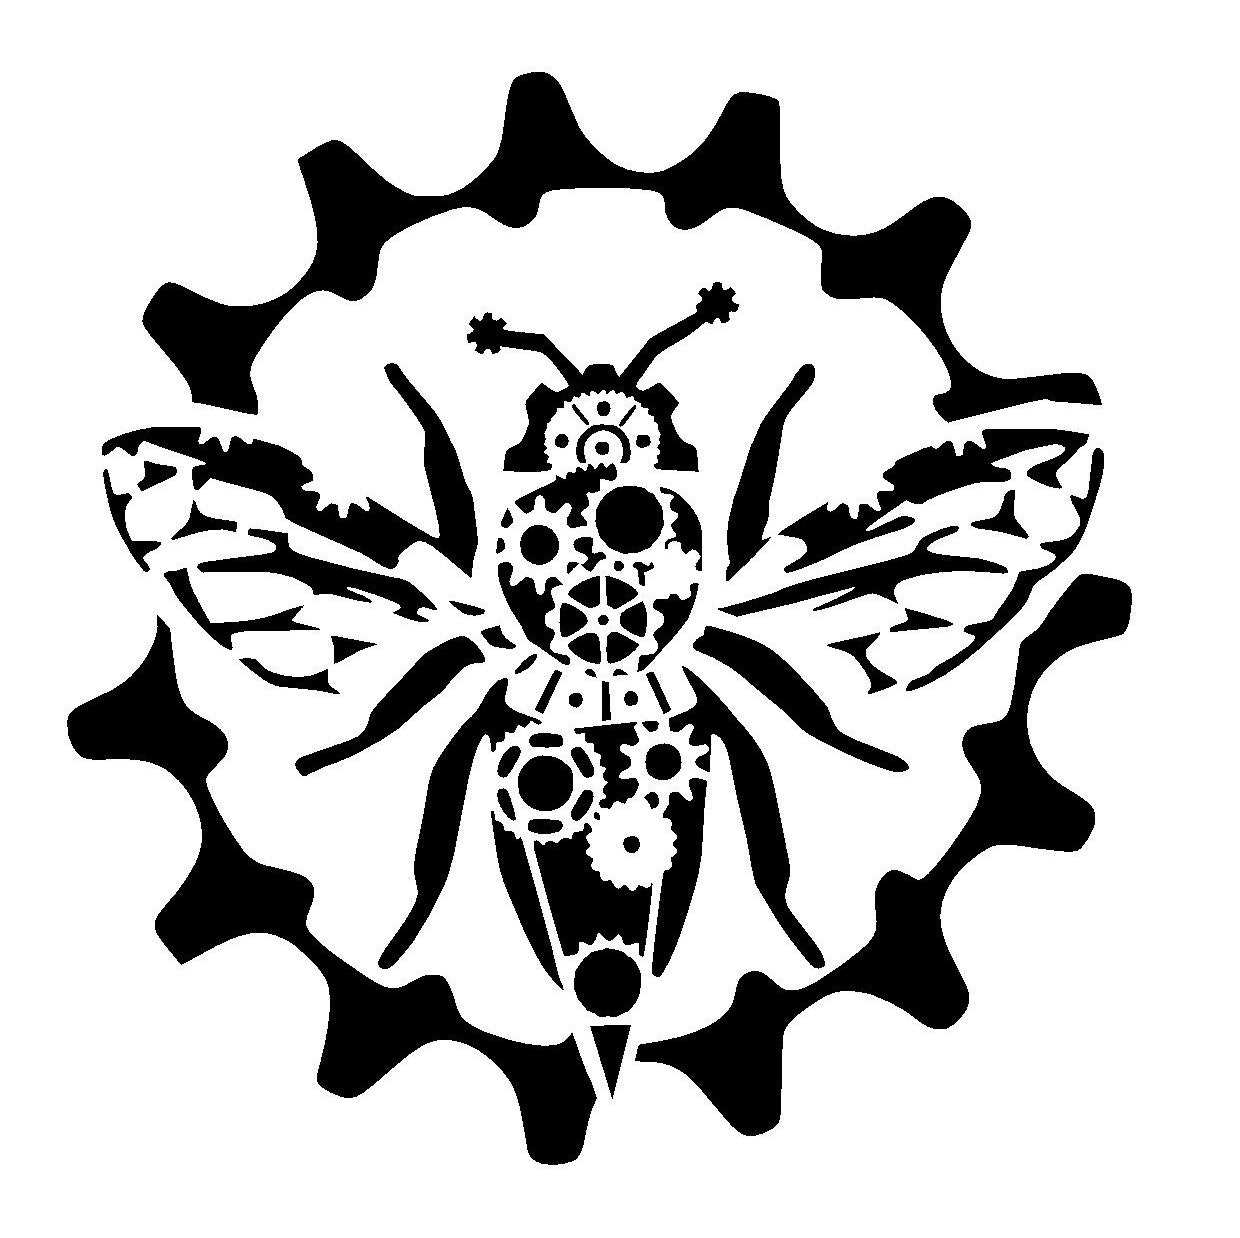 Sports Car Stencils likewise Royalty Free Stock Image Leopard Skin Head Silhouette Africa Illustration Symbol As Image31150606 as well Sweet Poppy Stencil Ornate Dragonfly P 1012 further Weekend Workshop A Crash Course In Stenciling Fabric besides 150881230401. on airbrush patterns for free